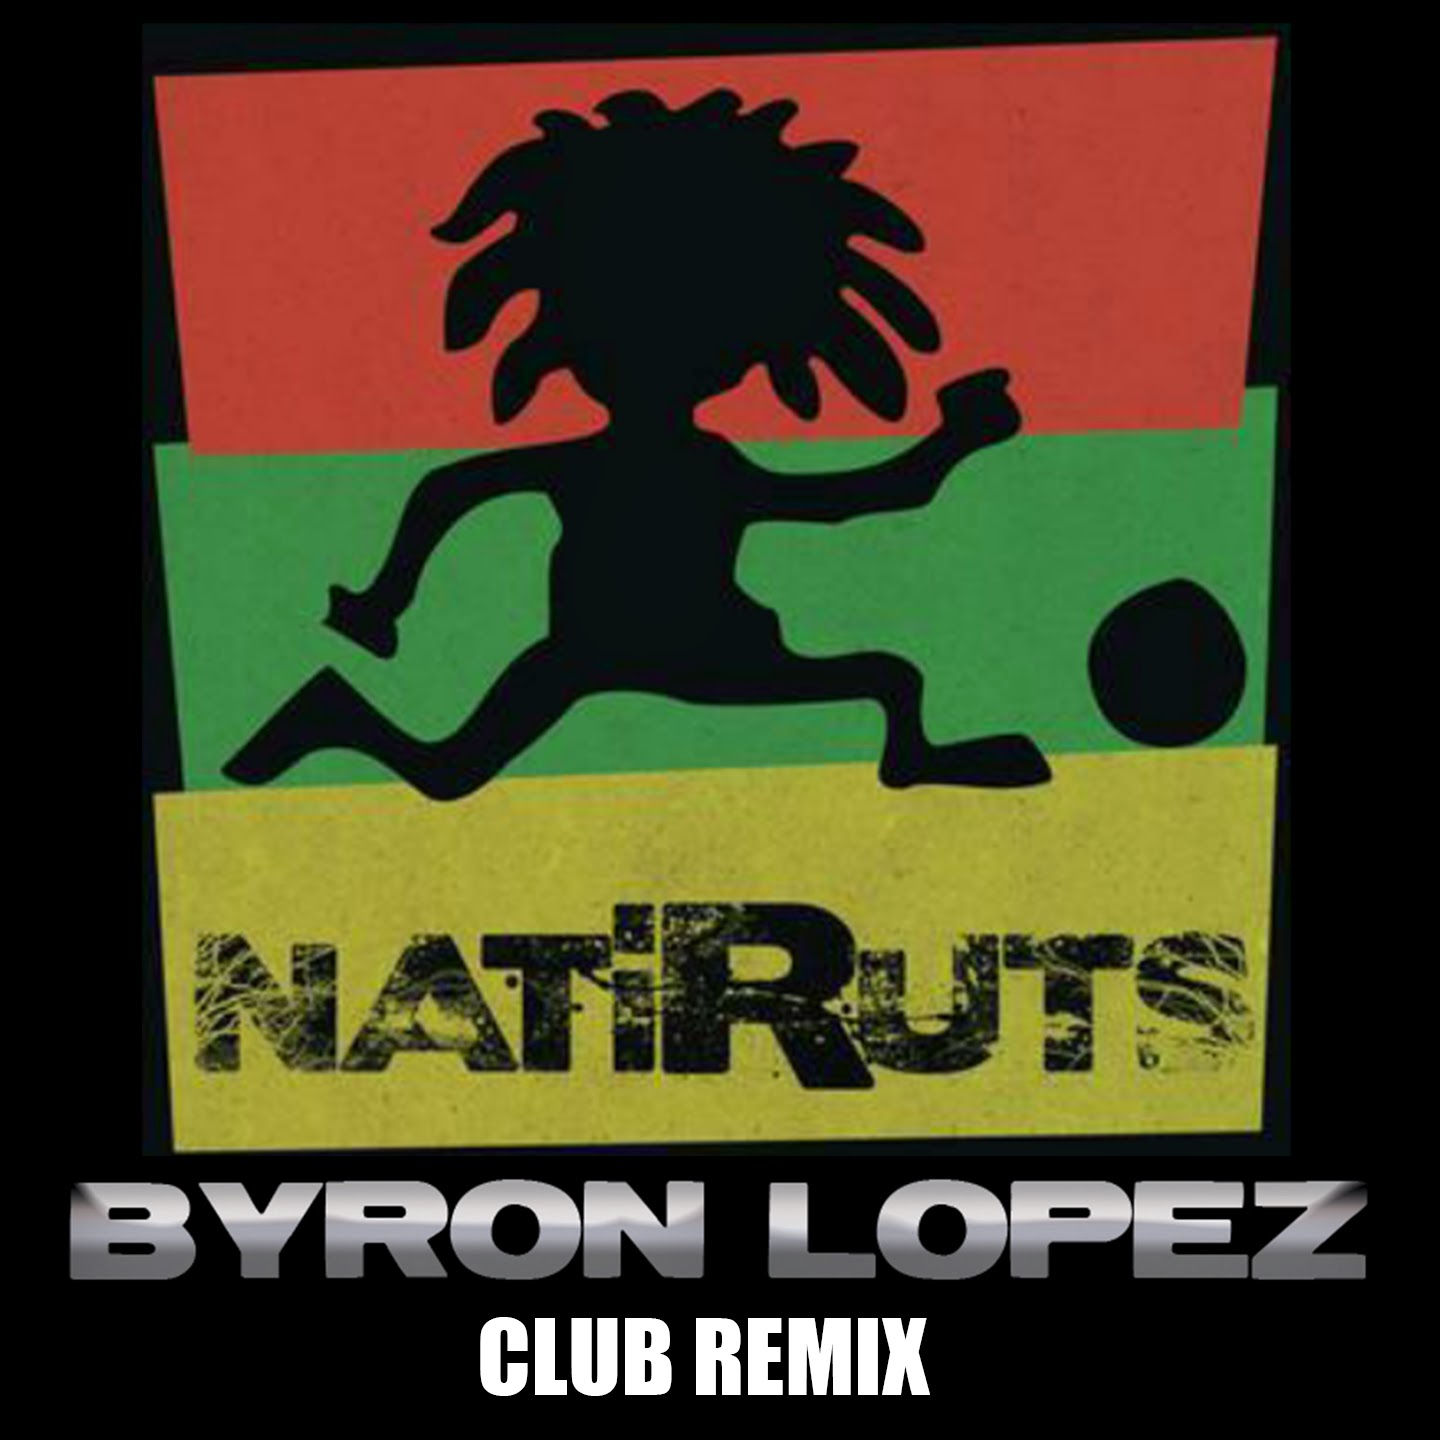 Dj and producer house music natiruts reggae power for House music remix